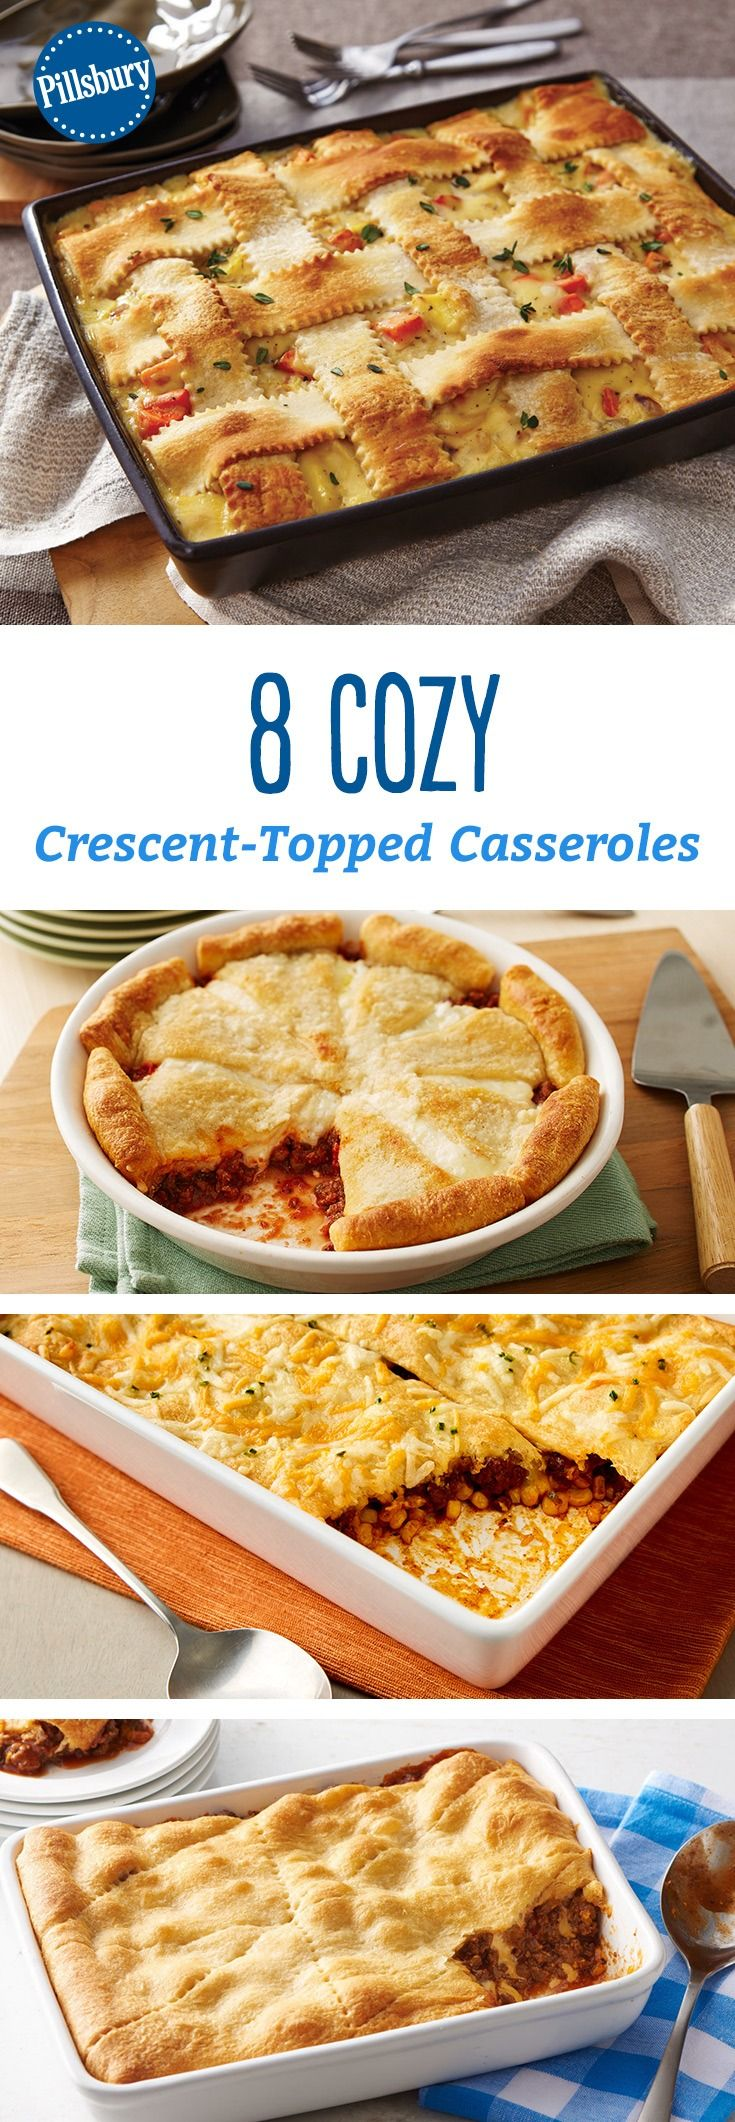 Nothing says cozy like a piping hot casserole topped with flaky crescent dough. There's a dinner bake for everyone—from cheesy chicken and broccoli to BBQ beef.